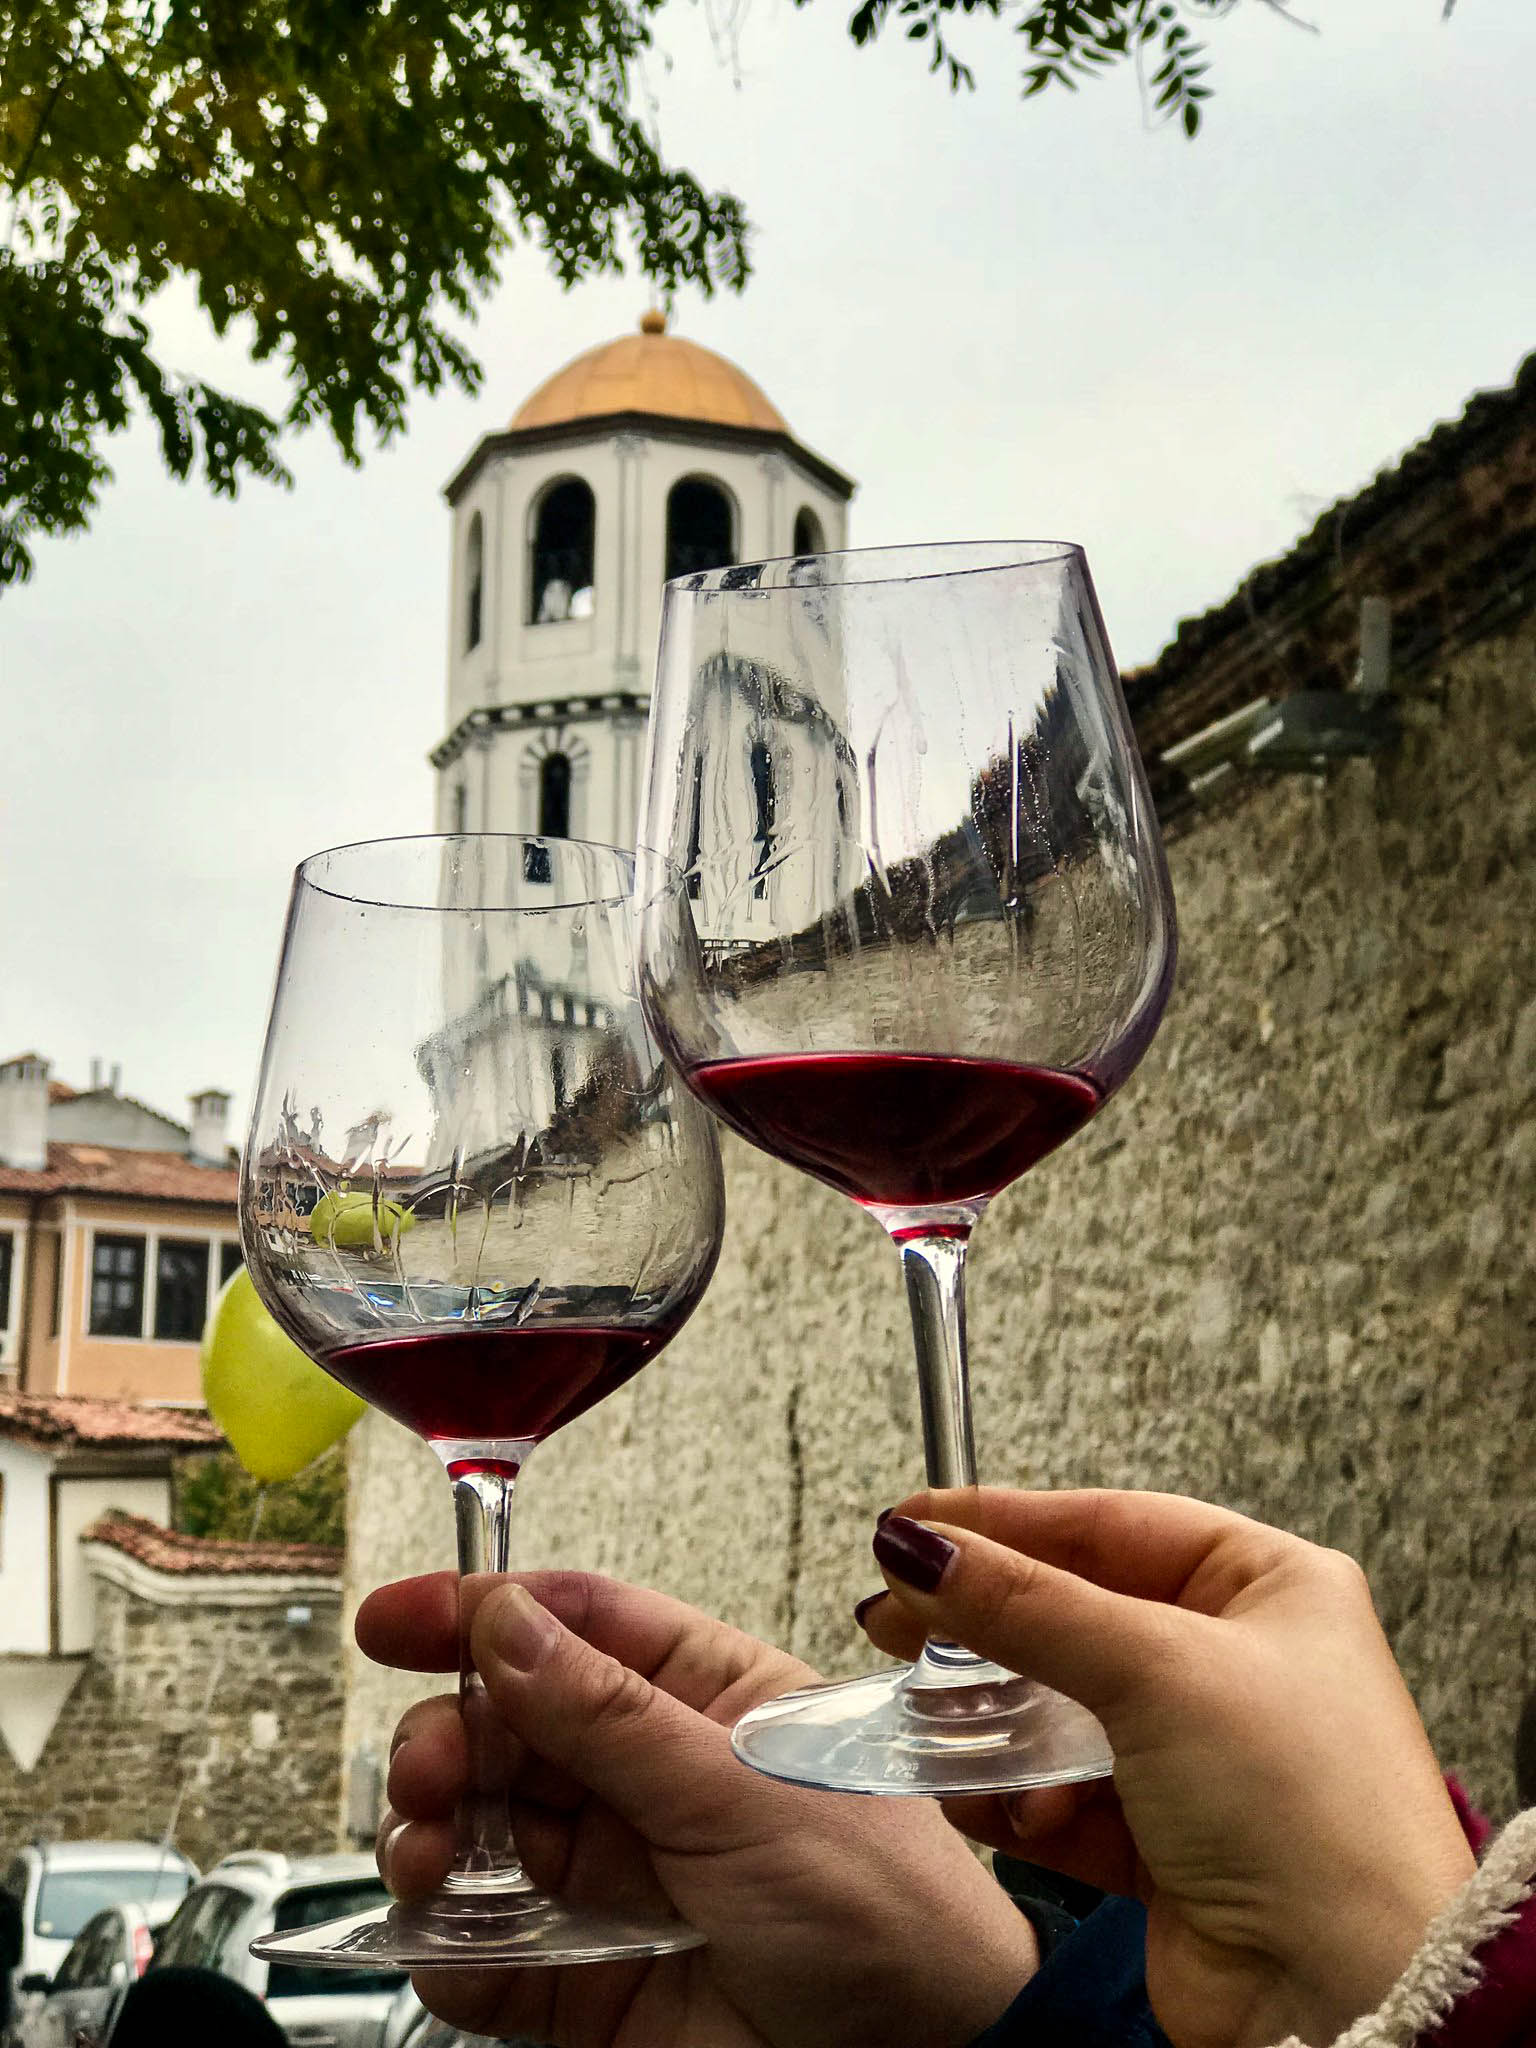 The Young Wine Festival in Plovdiv's Old Town